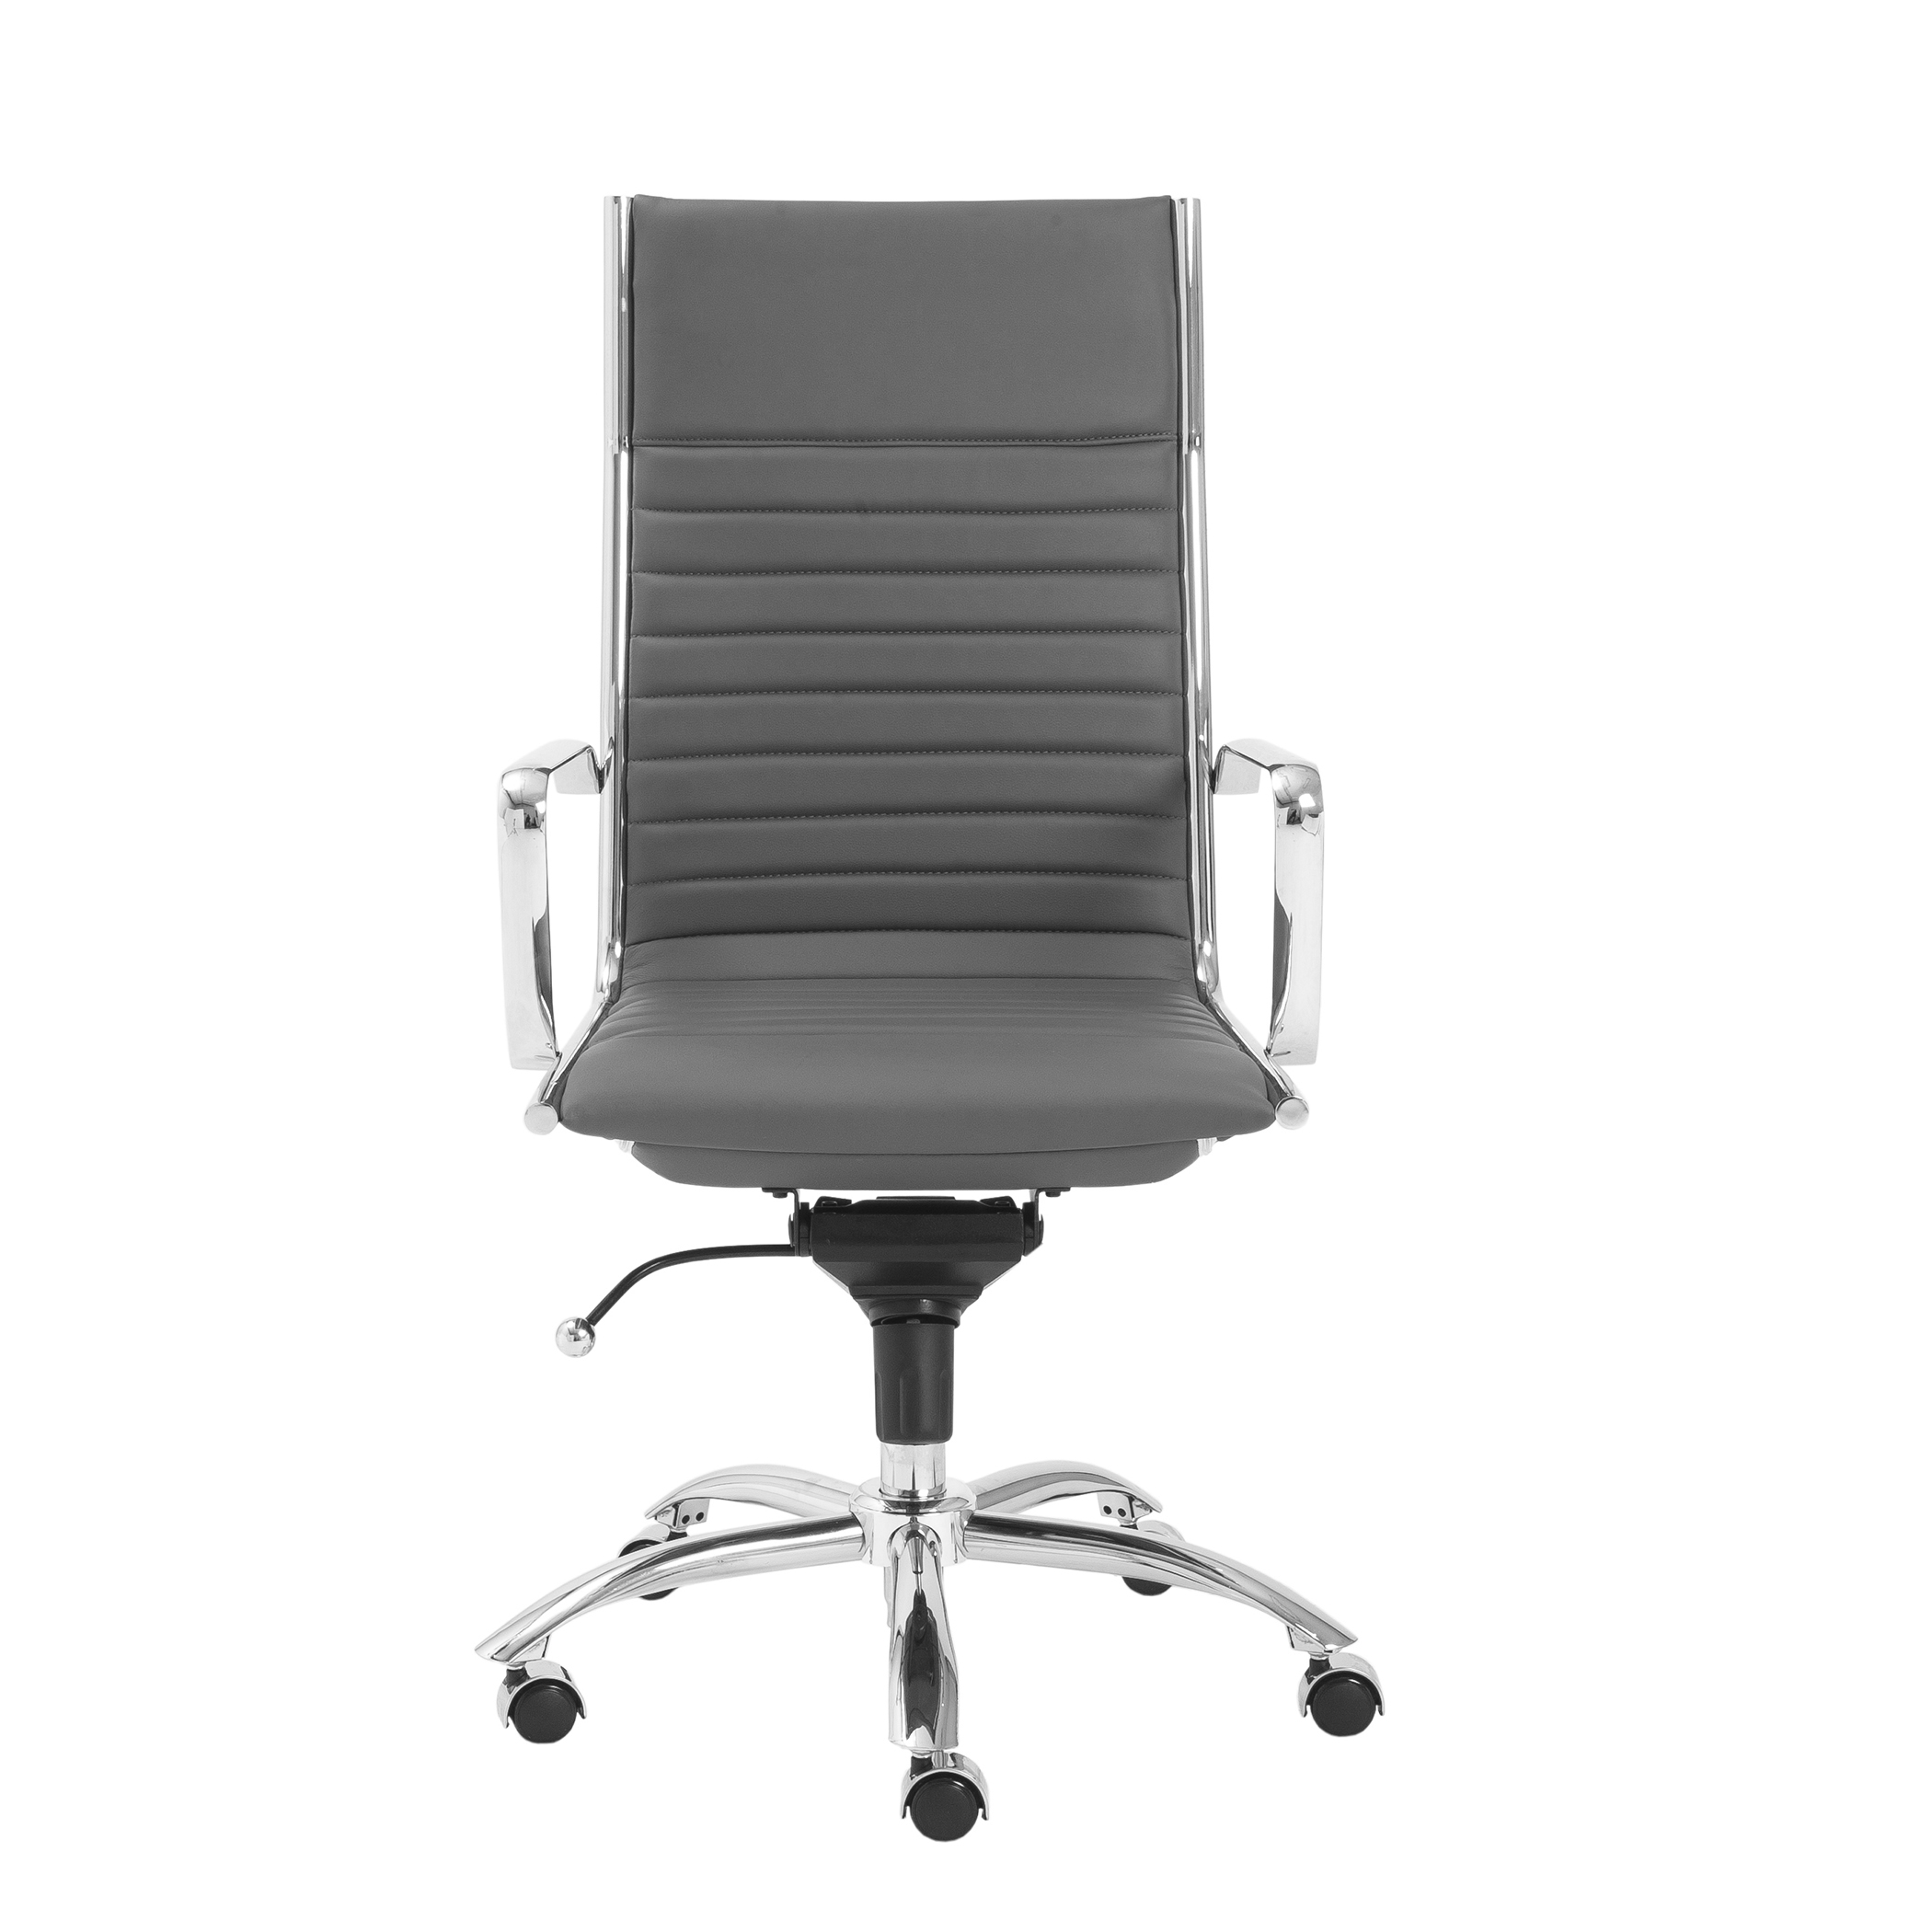 2a82e826a45d Dirk High Back Office Chair - Euro Style